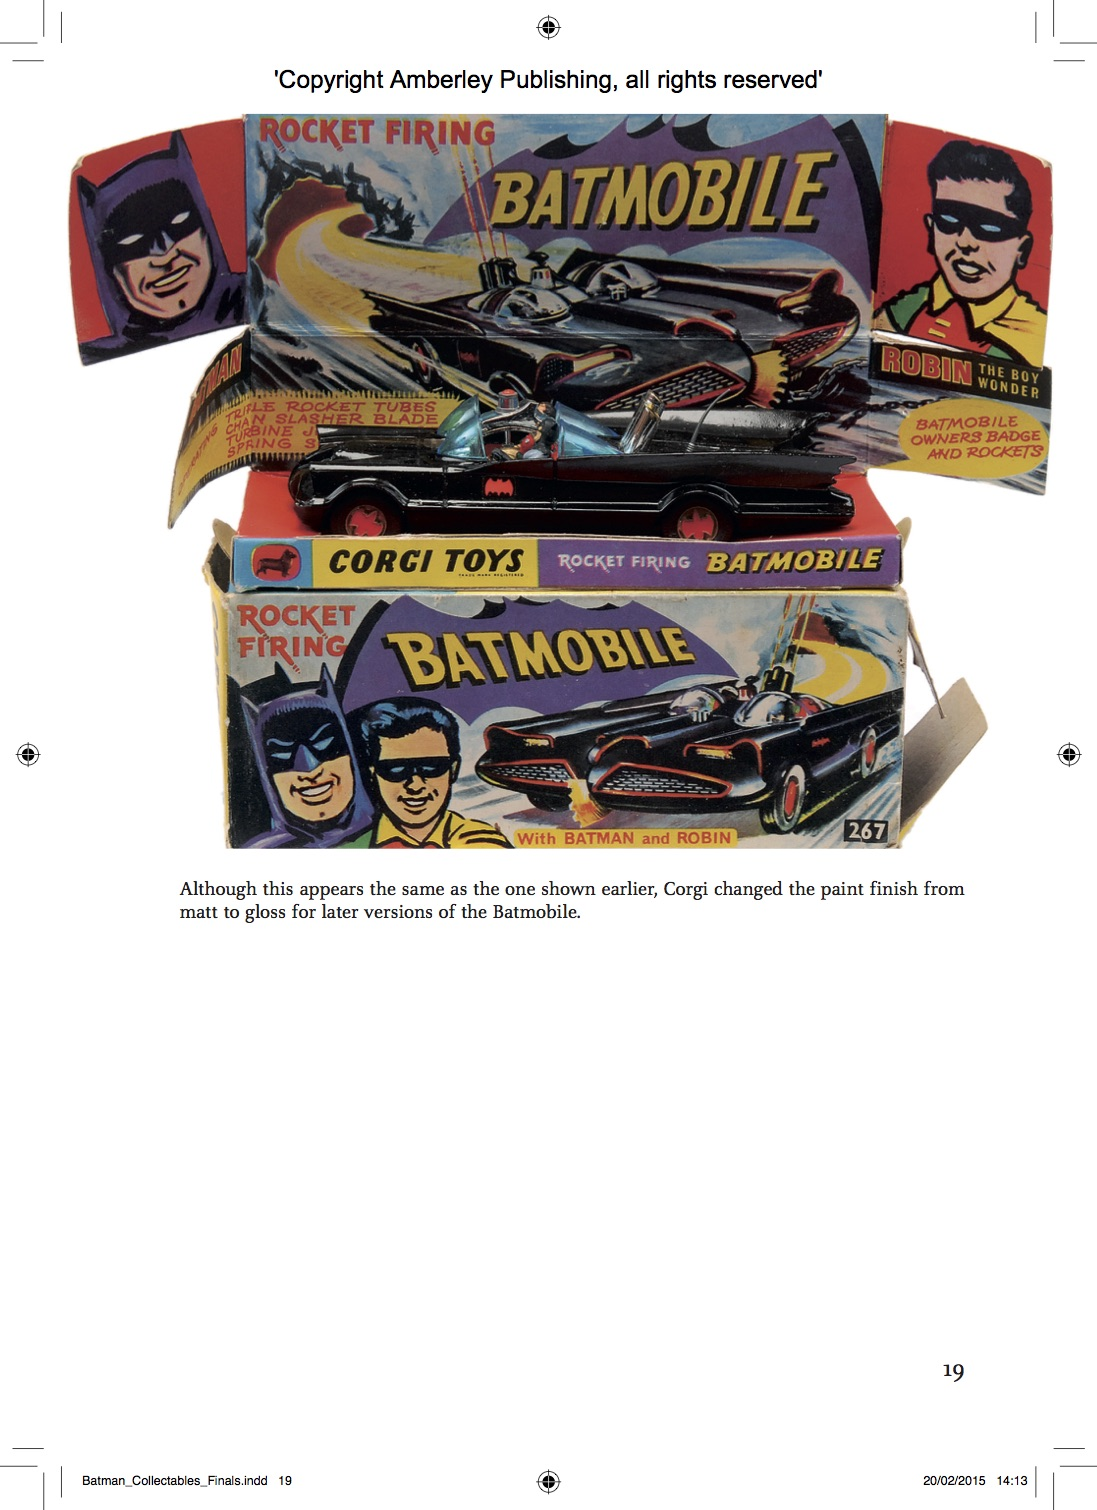 Batman Collectibles Merged File [TXT-]2